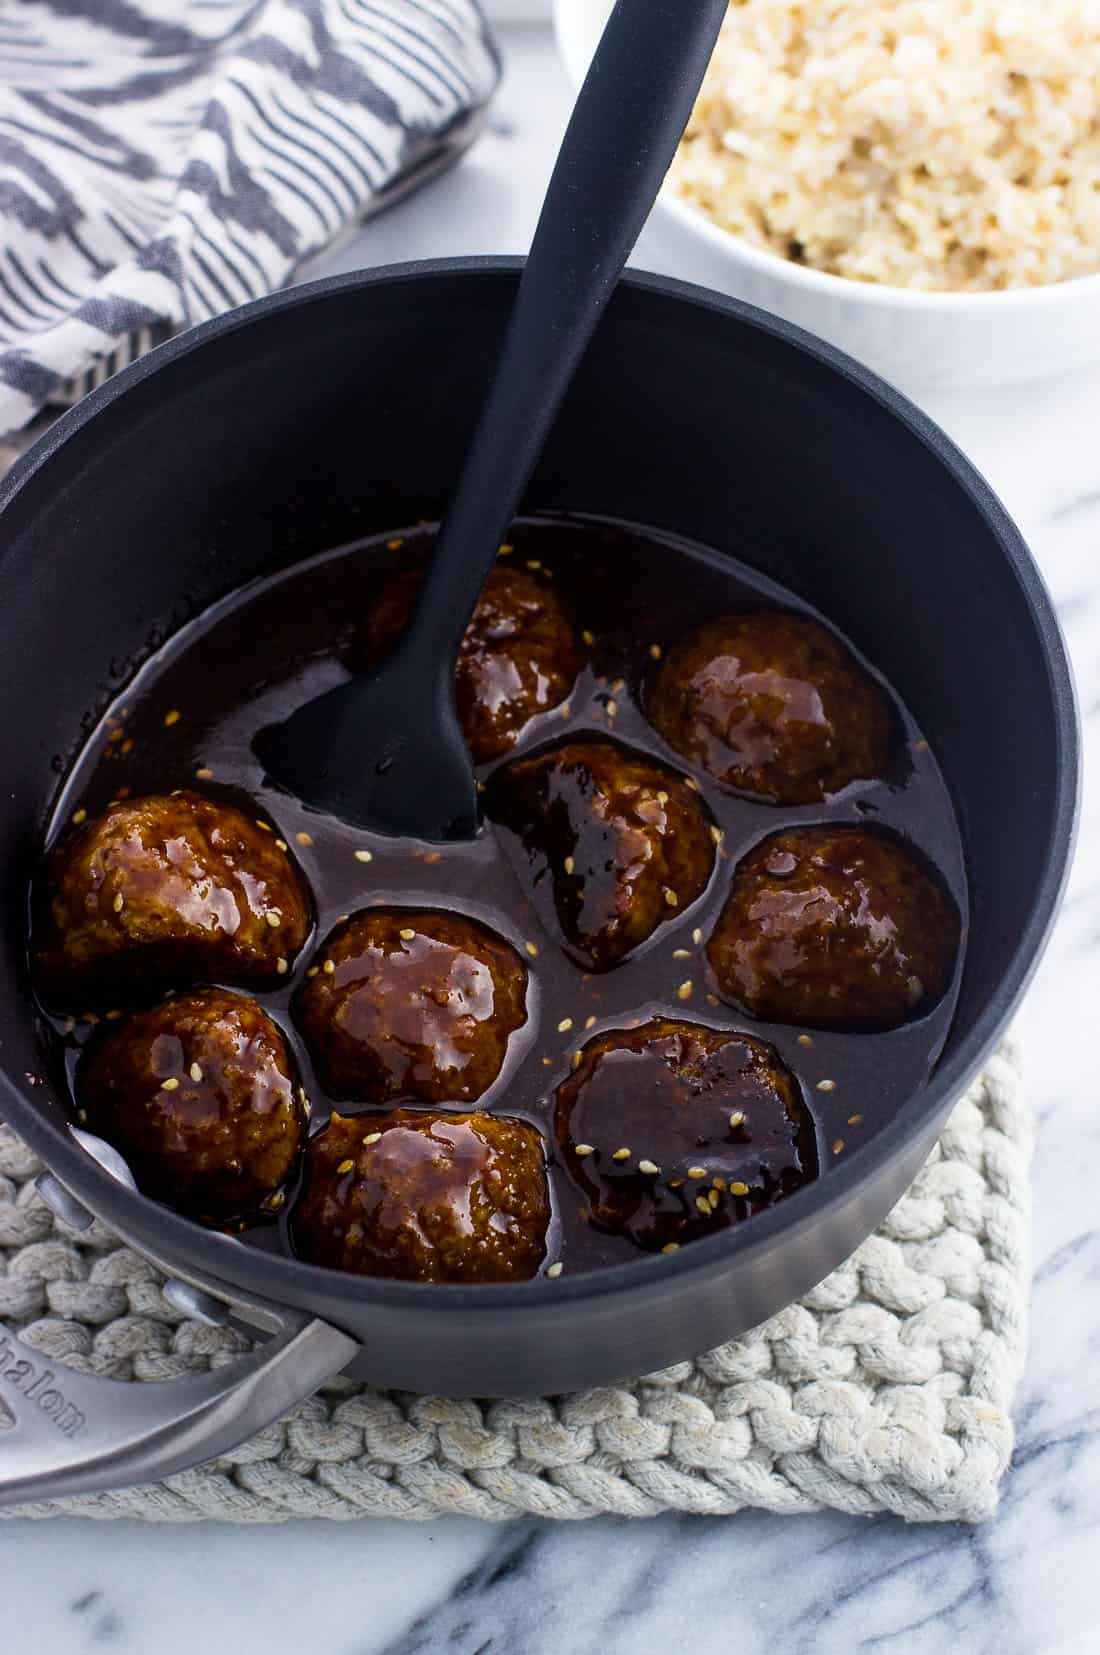 Meatballs in a saucepan covered with hoisin glaze